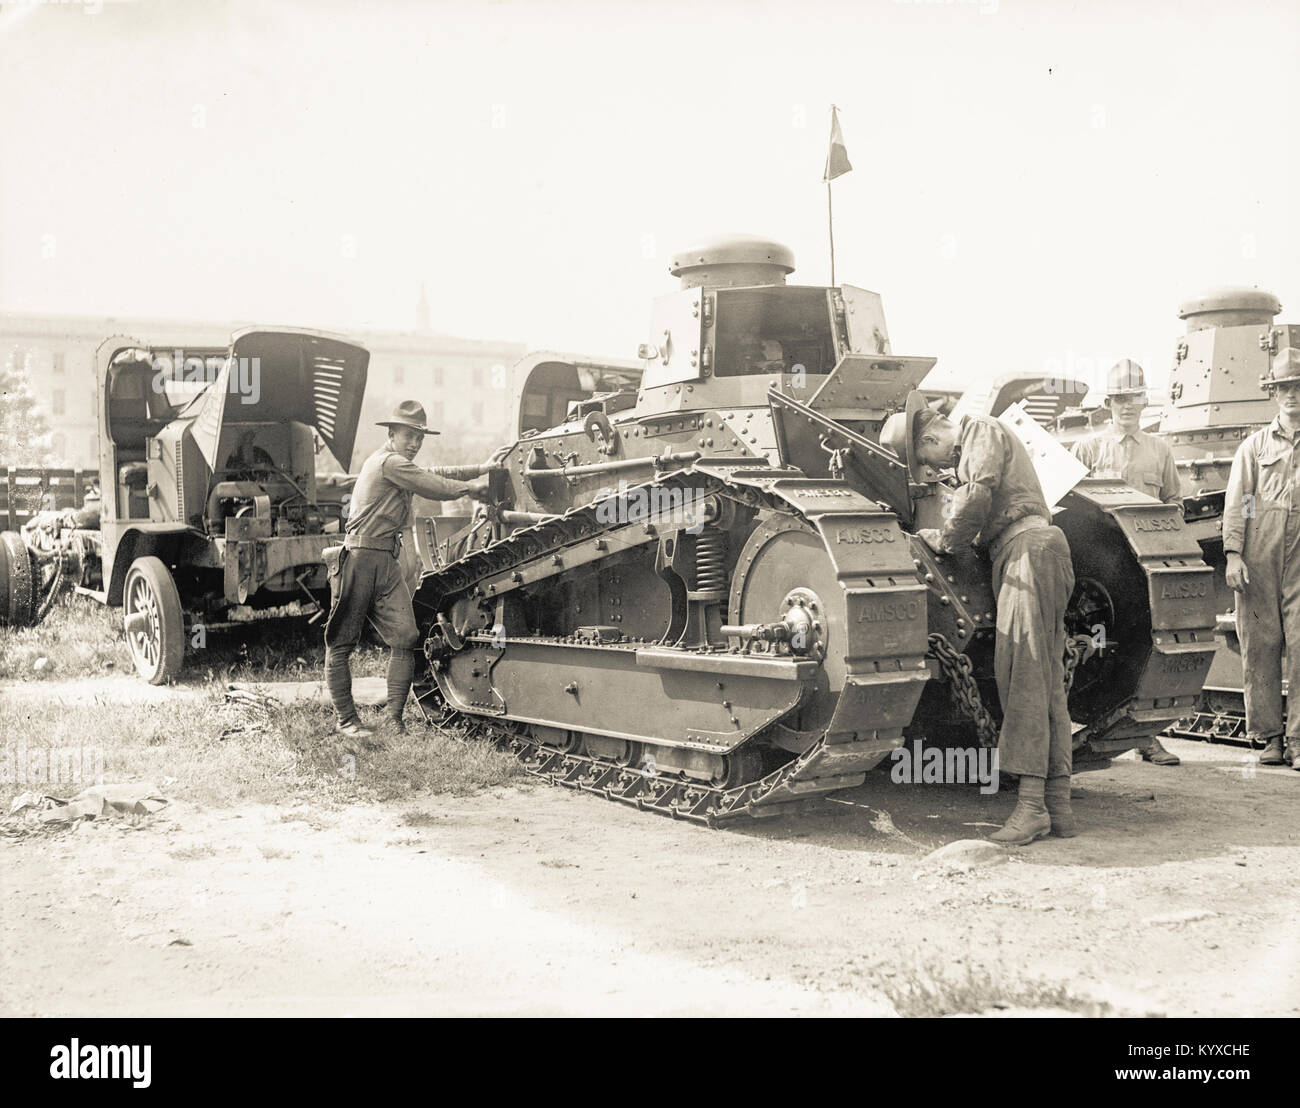 An American built World War One tank undergoes testing before being shipped to the battlefront in Europe. - Stock Image